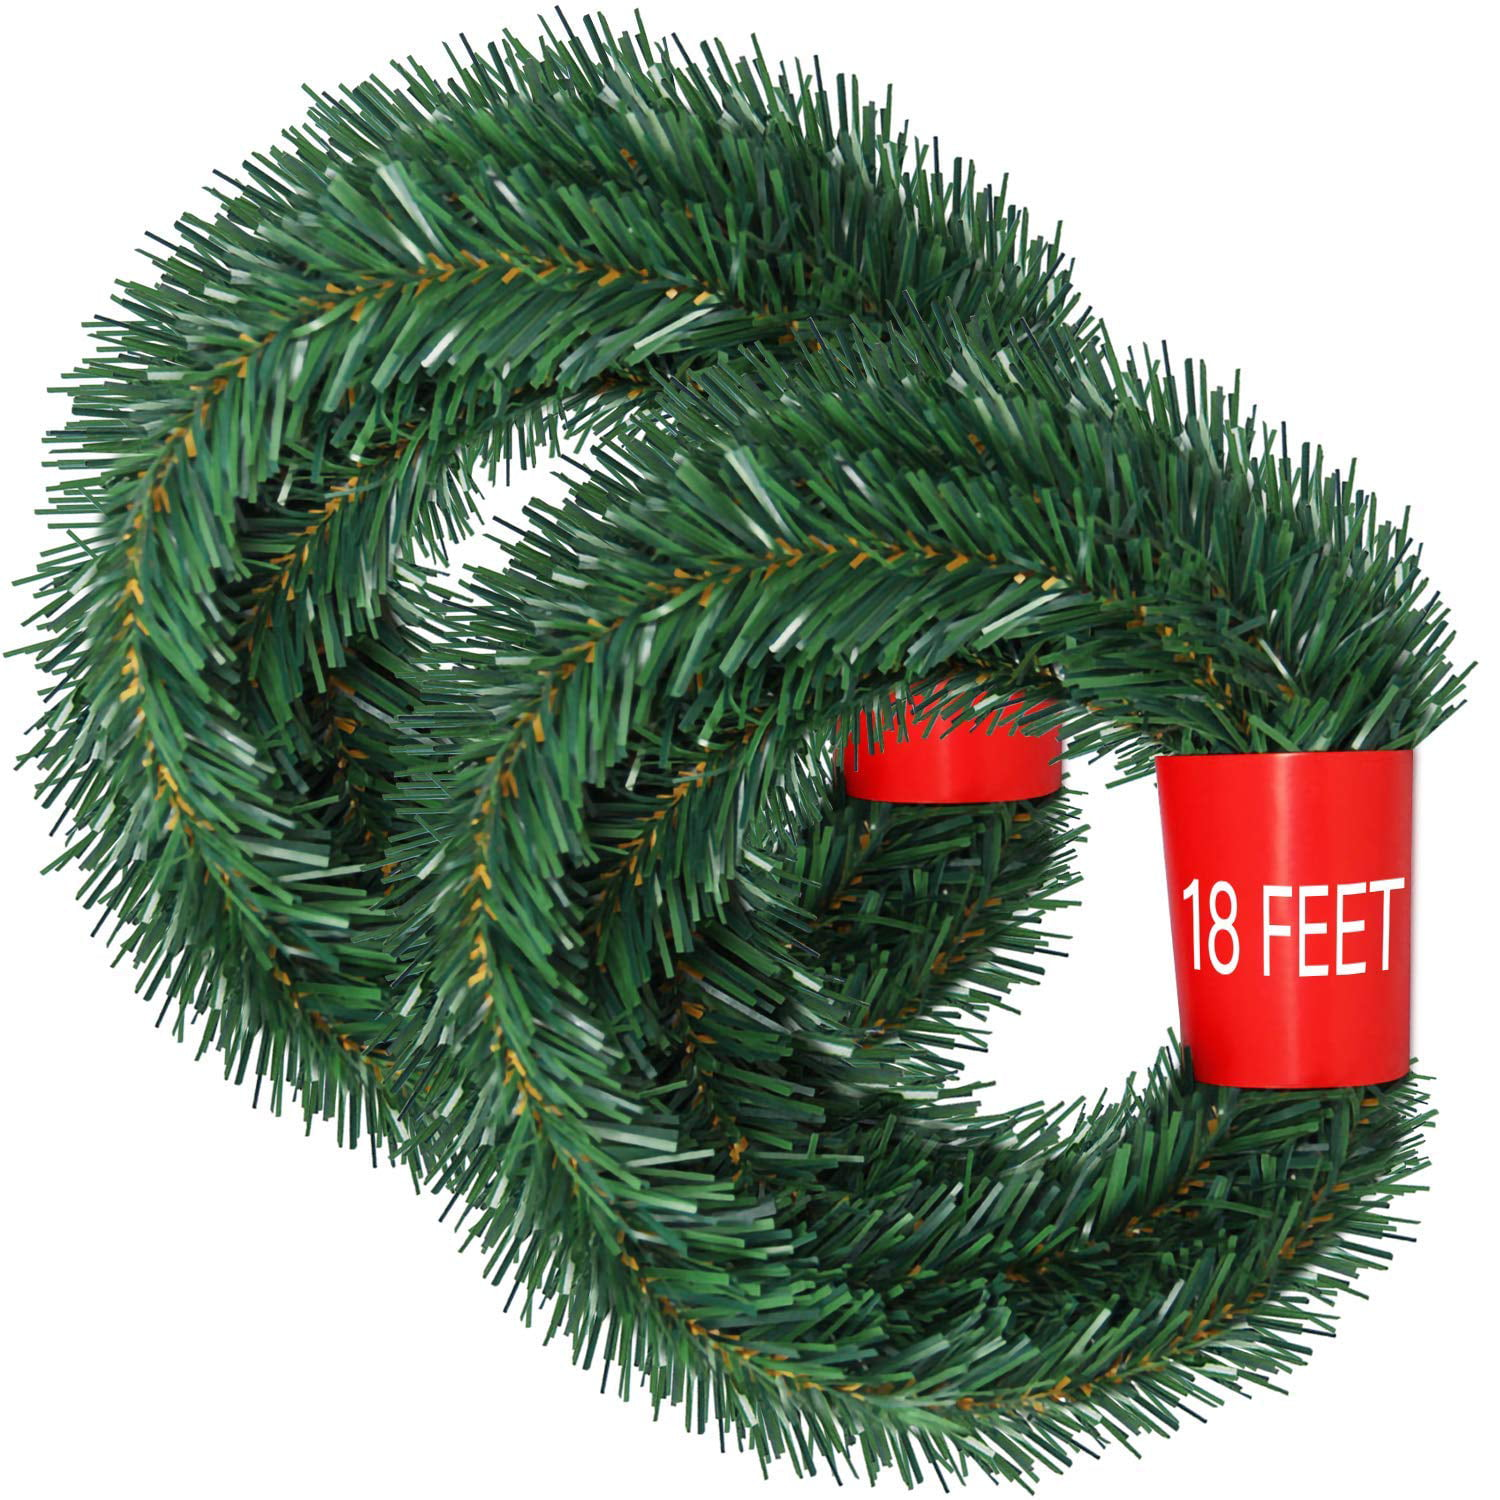 Christmas Garlands.36 Feet Christmas Garland 2 Strands Artificial Pine Garland Soft Greenery Garland For Holiday Wedding Party Decoration Outdoor Indoor Use